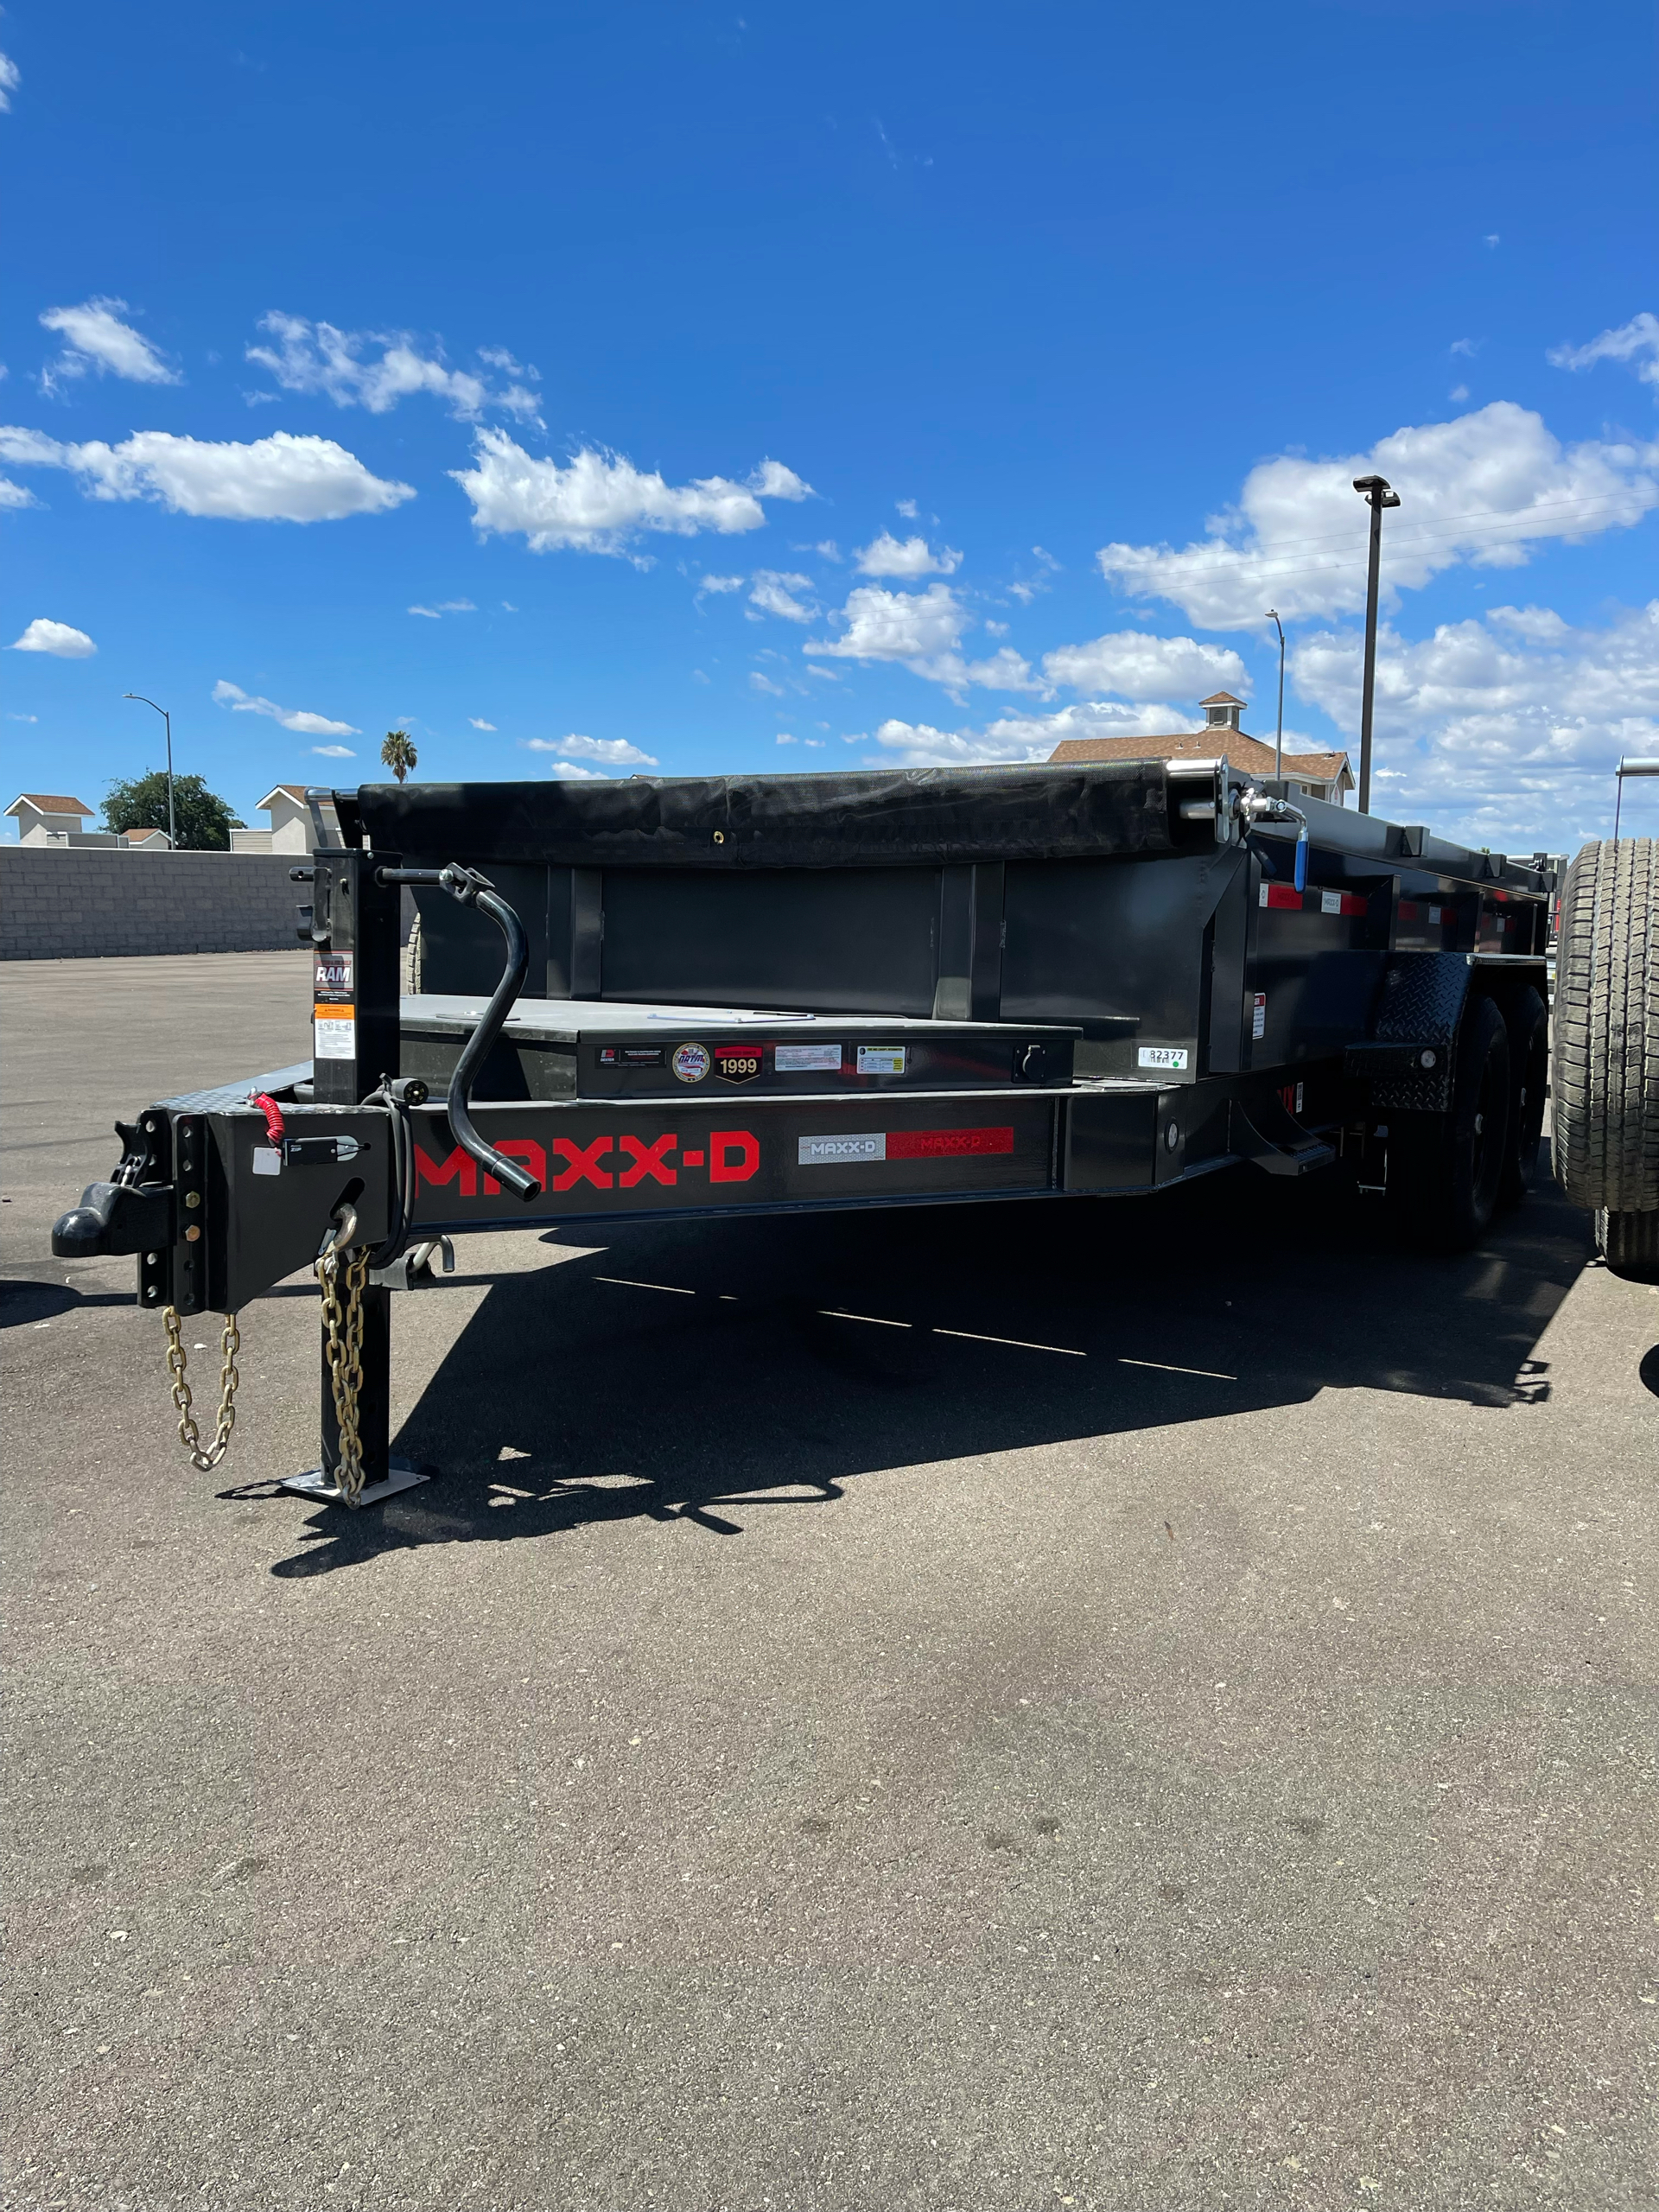 2021 MAXXD TRAILERS 14' X 83' I-BEAM DUMP TRAILER in Paso Robles, California - Photo 1